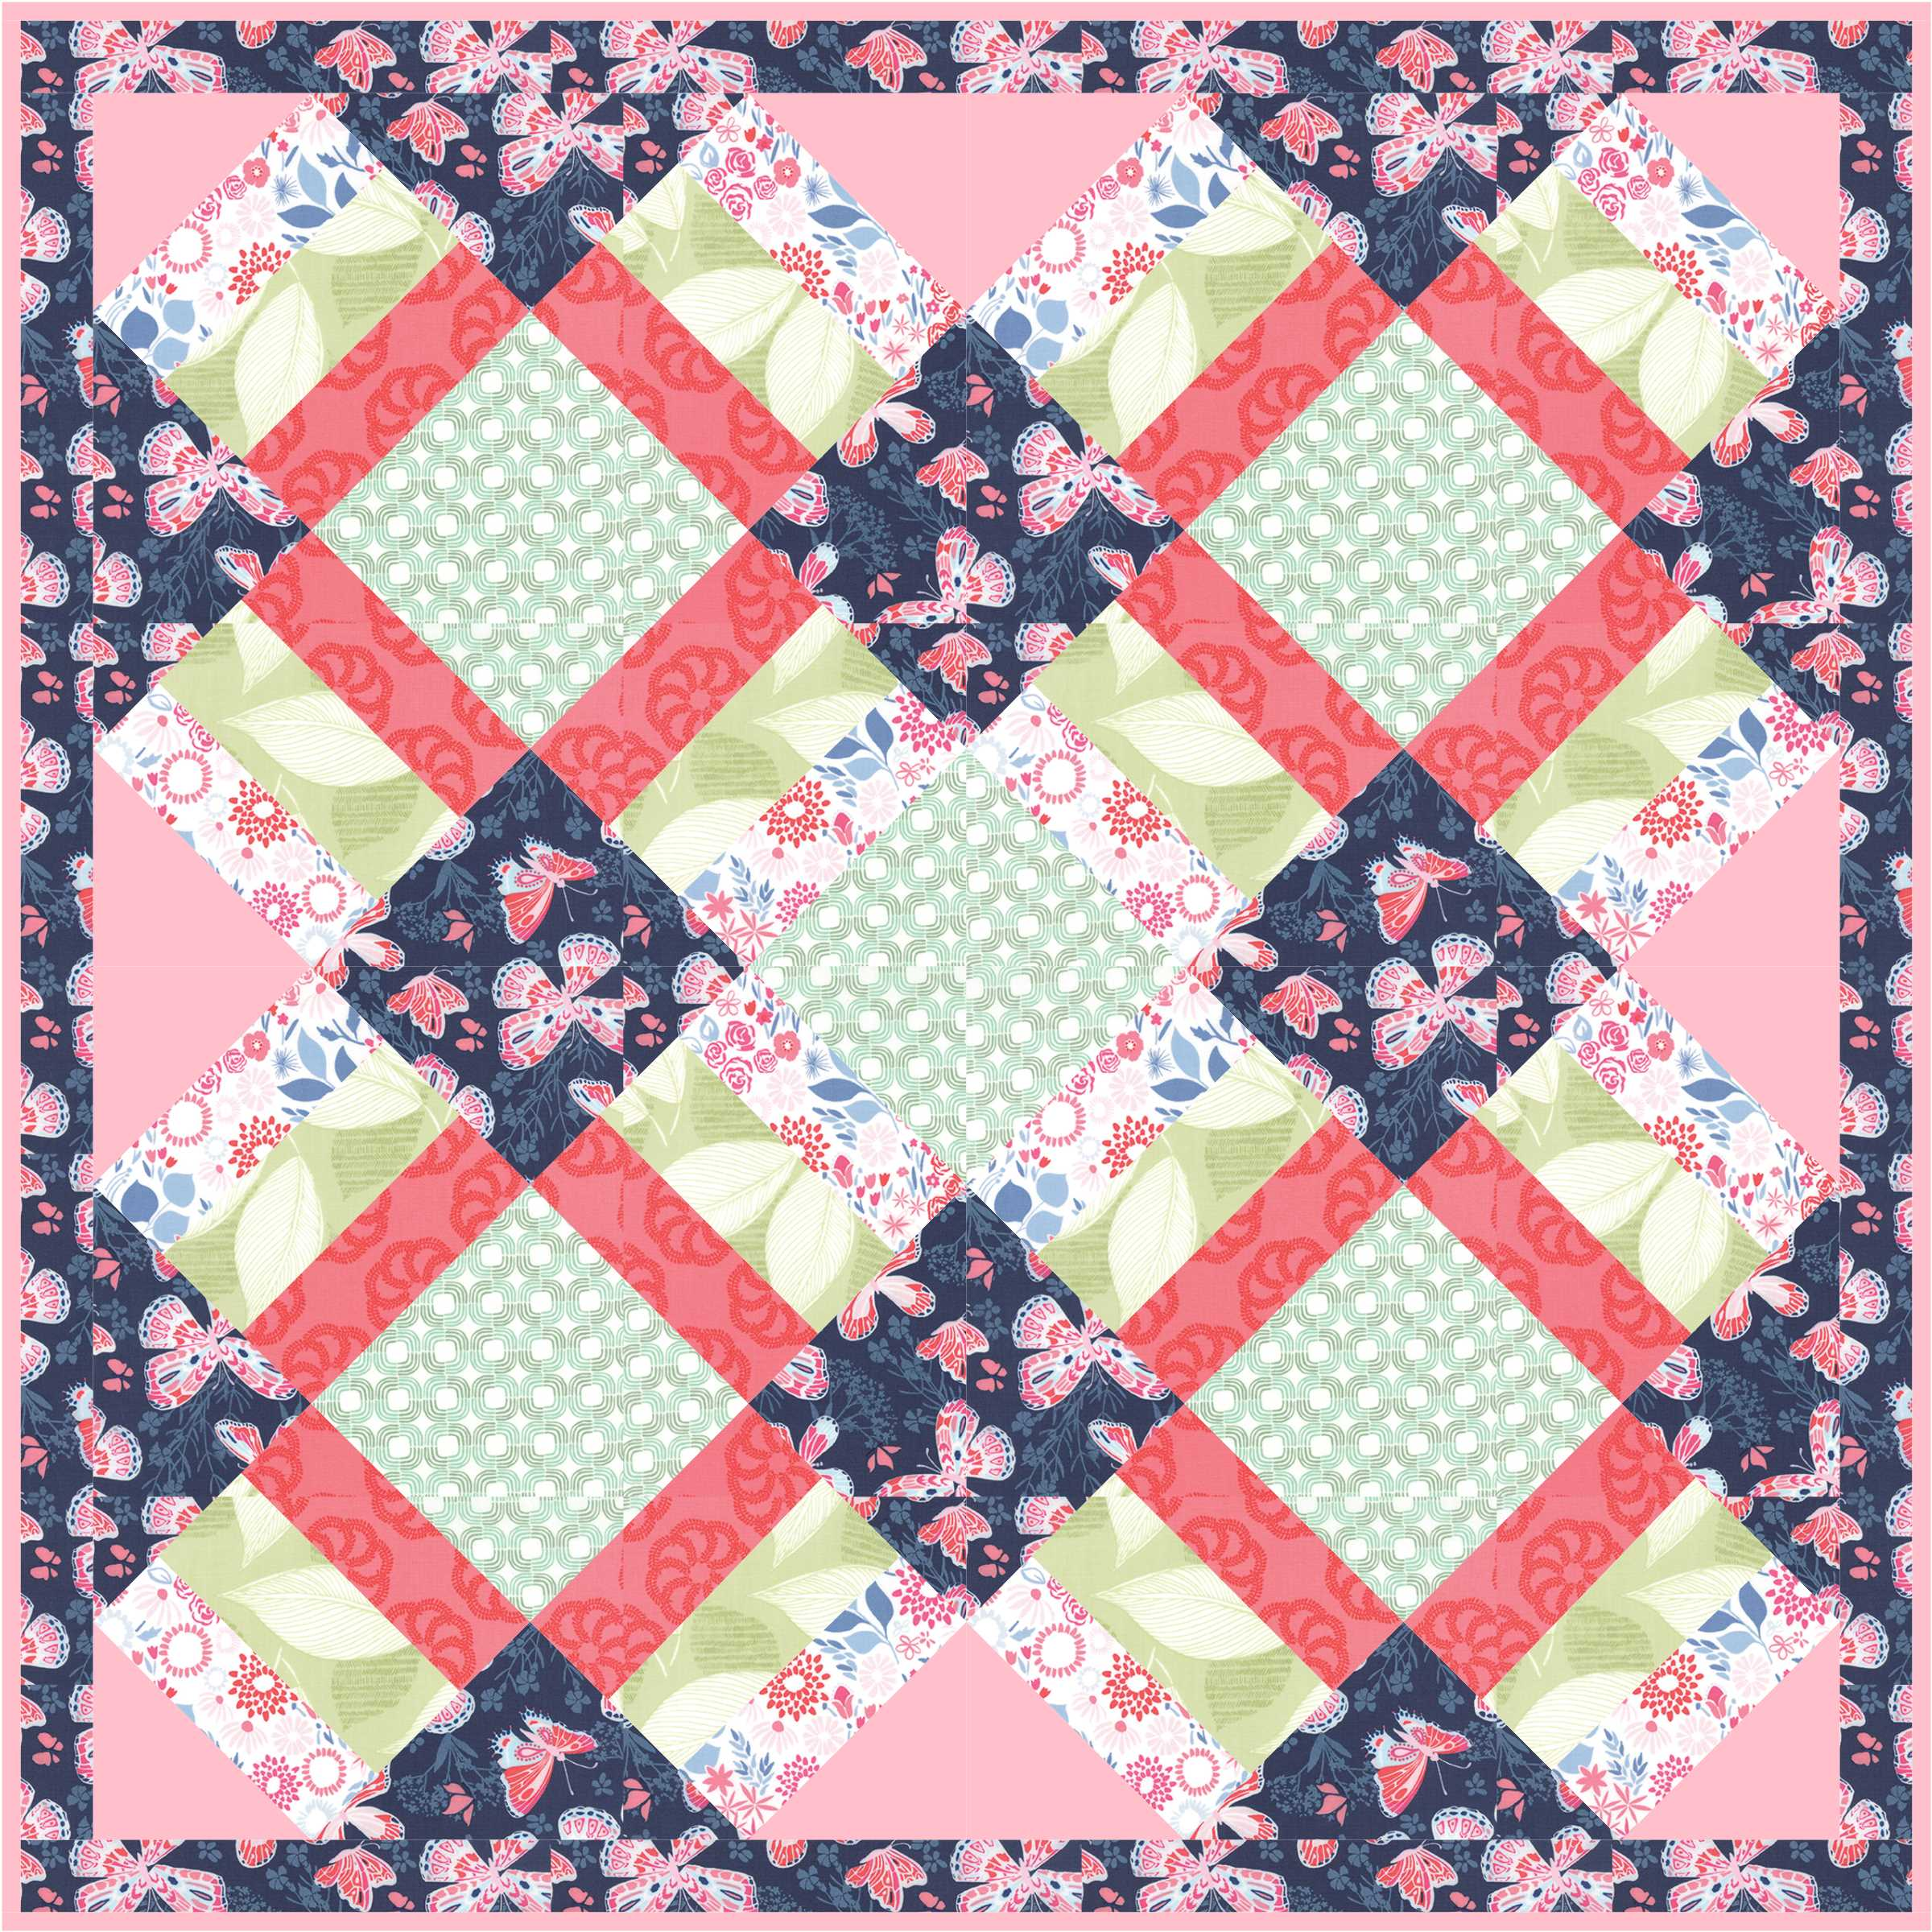 Chirp Quilt by Jacquelynne Steves- Aria fabric